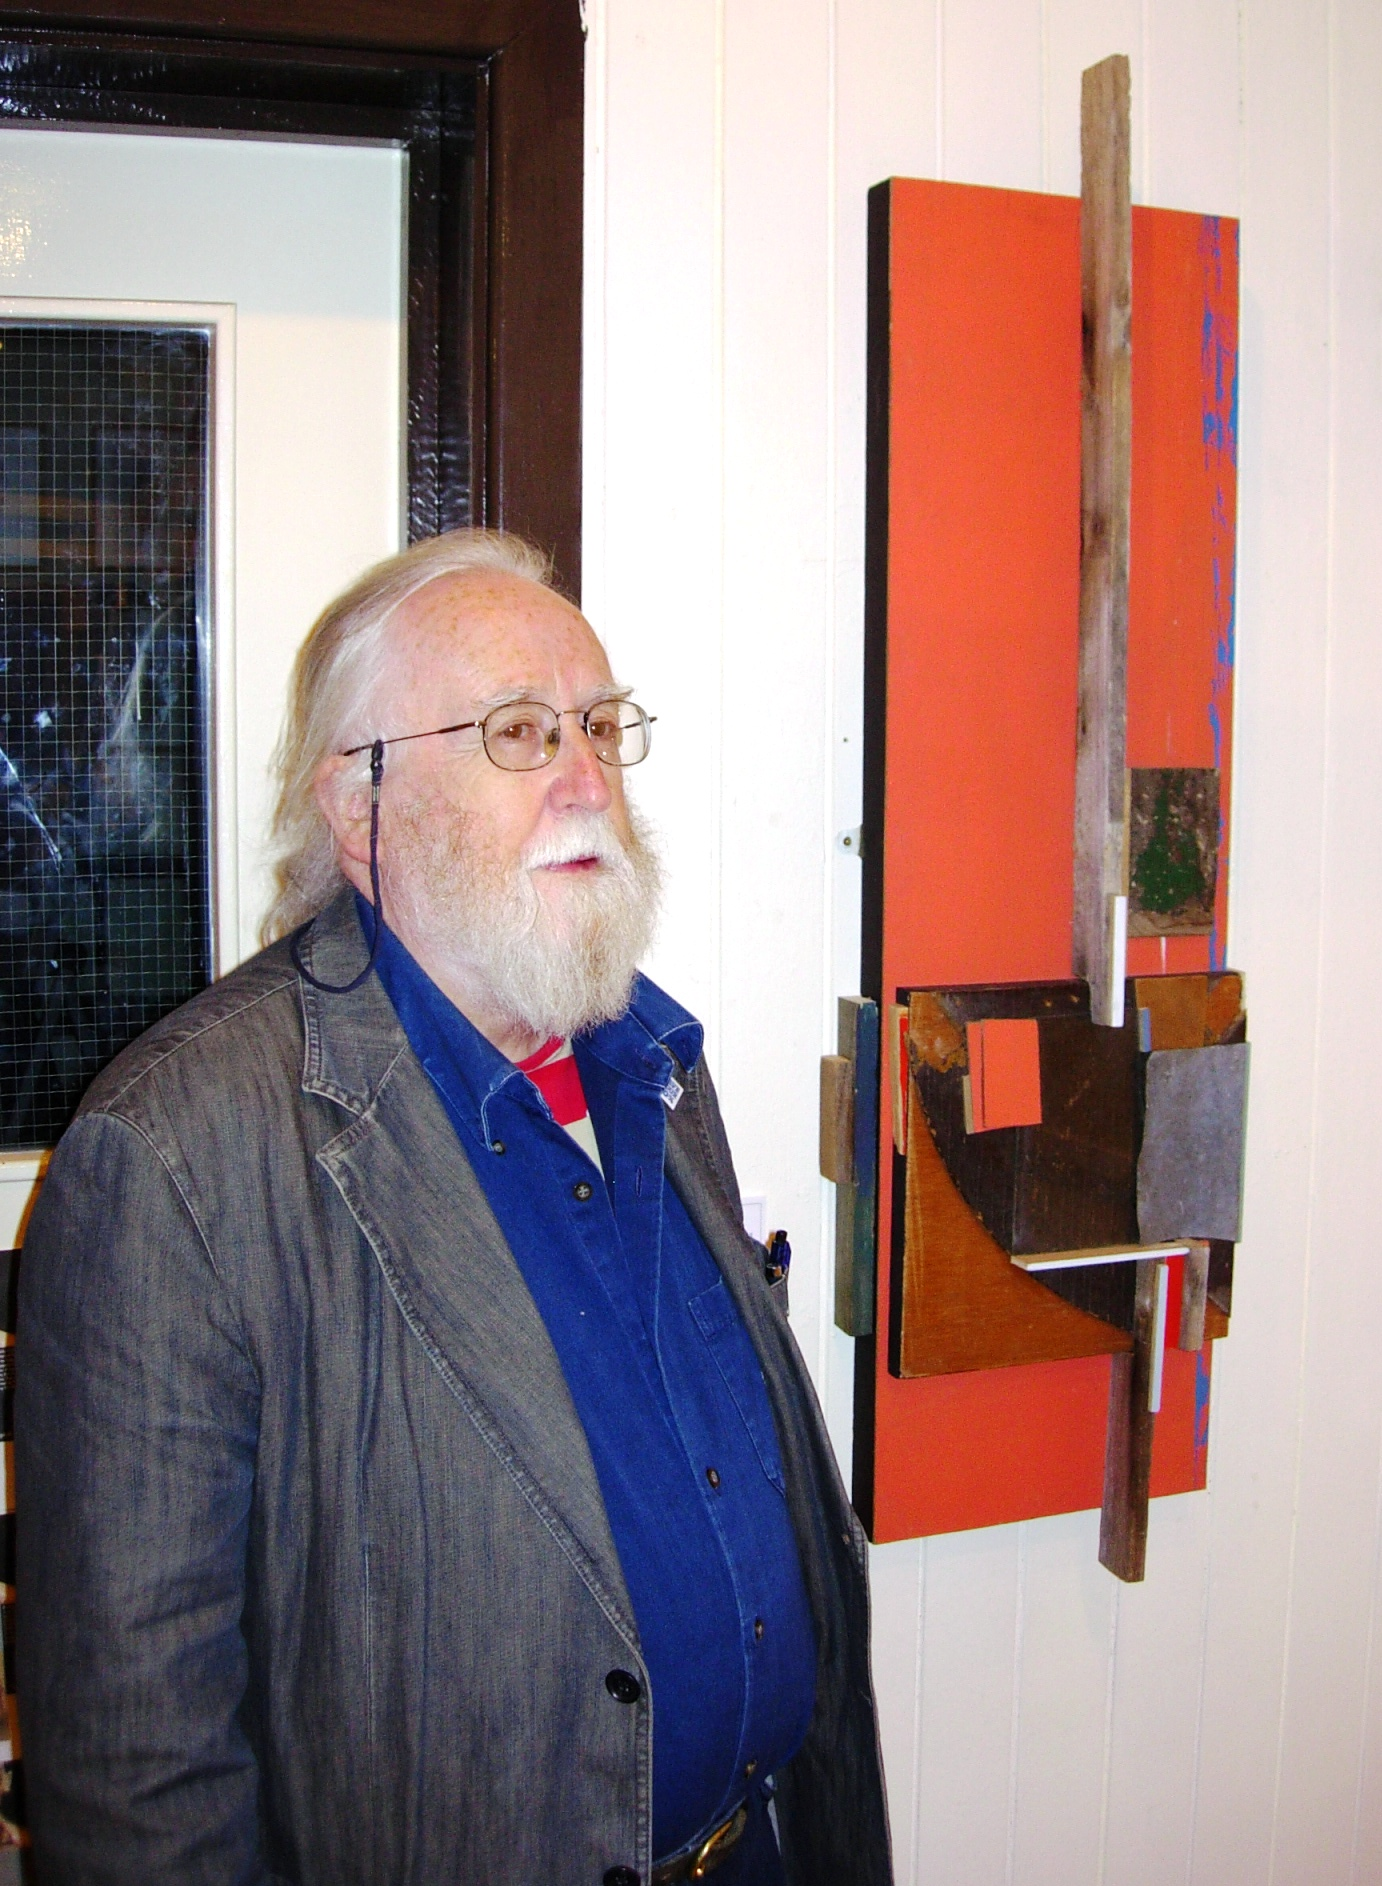 Islwyn Watkins with one of his assemblages, Trehafod, 27 September 2007